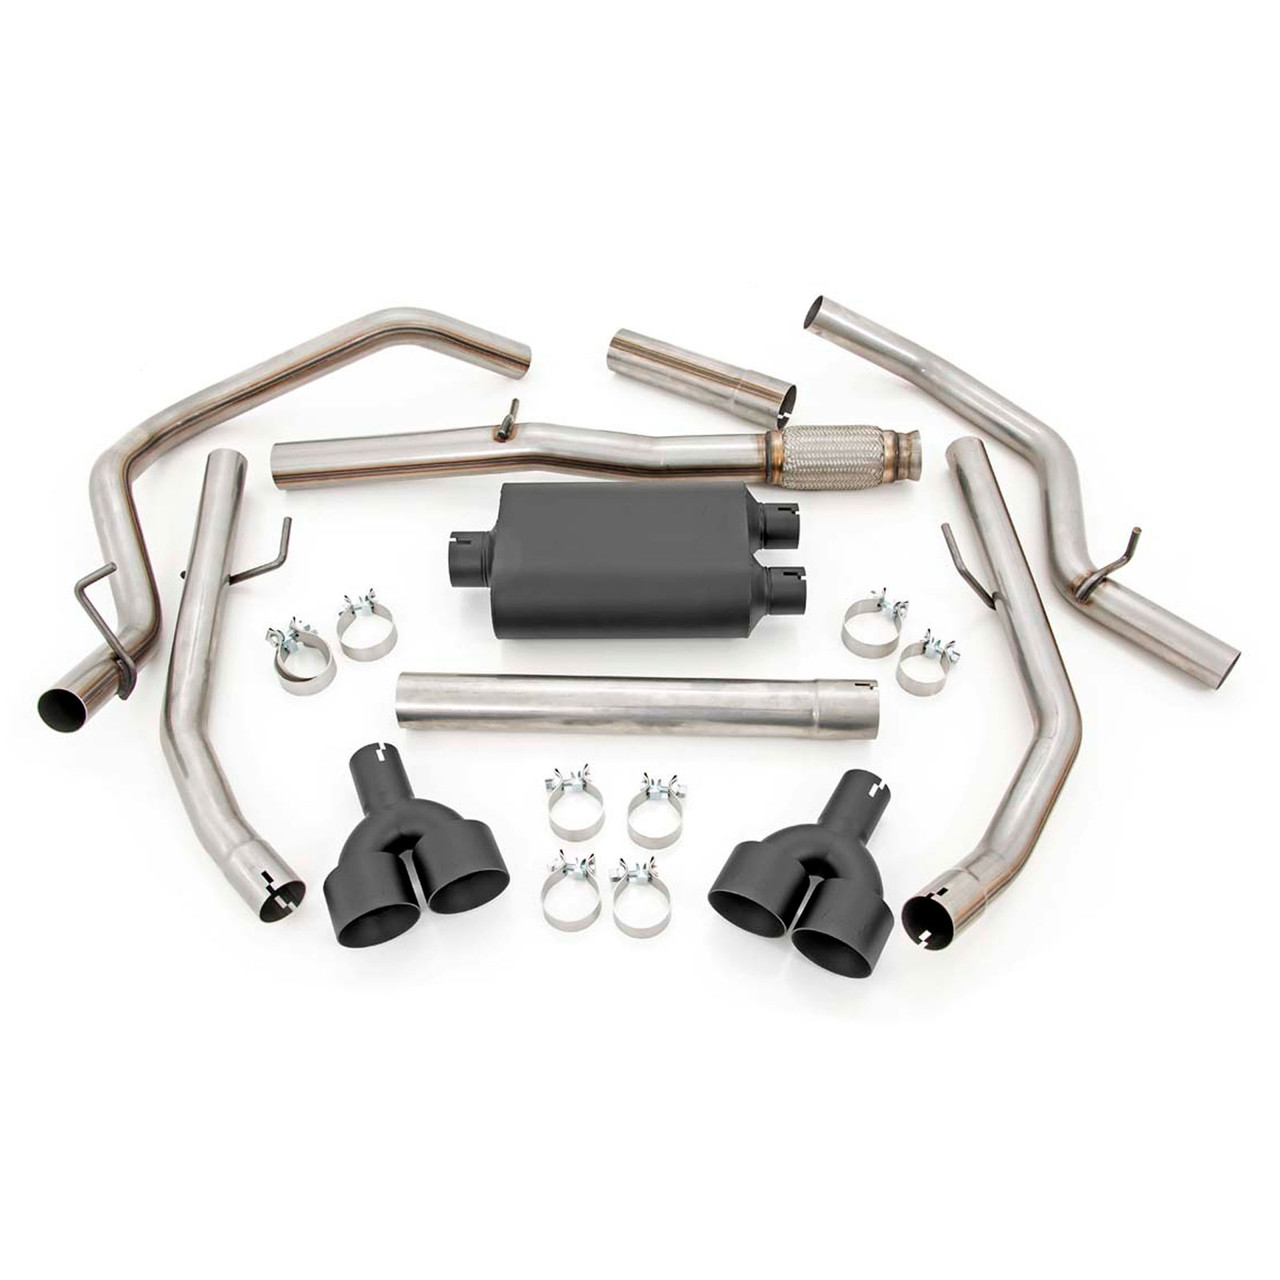 2019 2021 chevy silverado 1500 5 3l dual cat back exhaust system with black tips